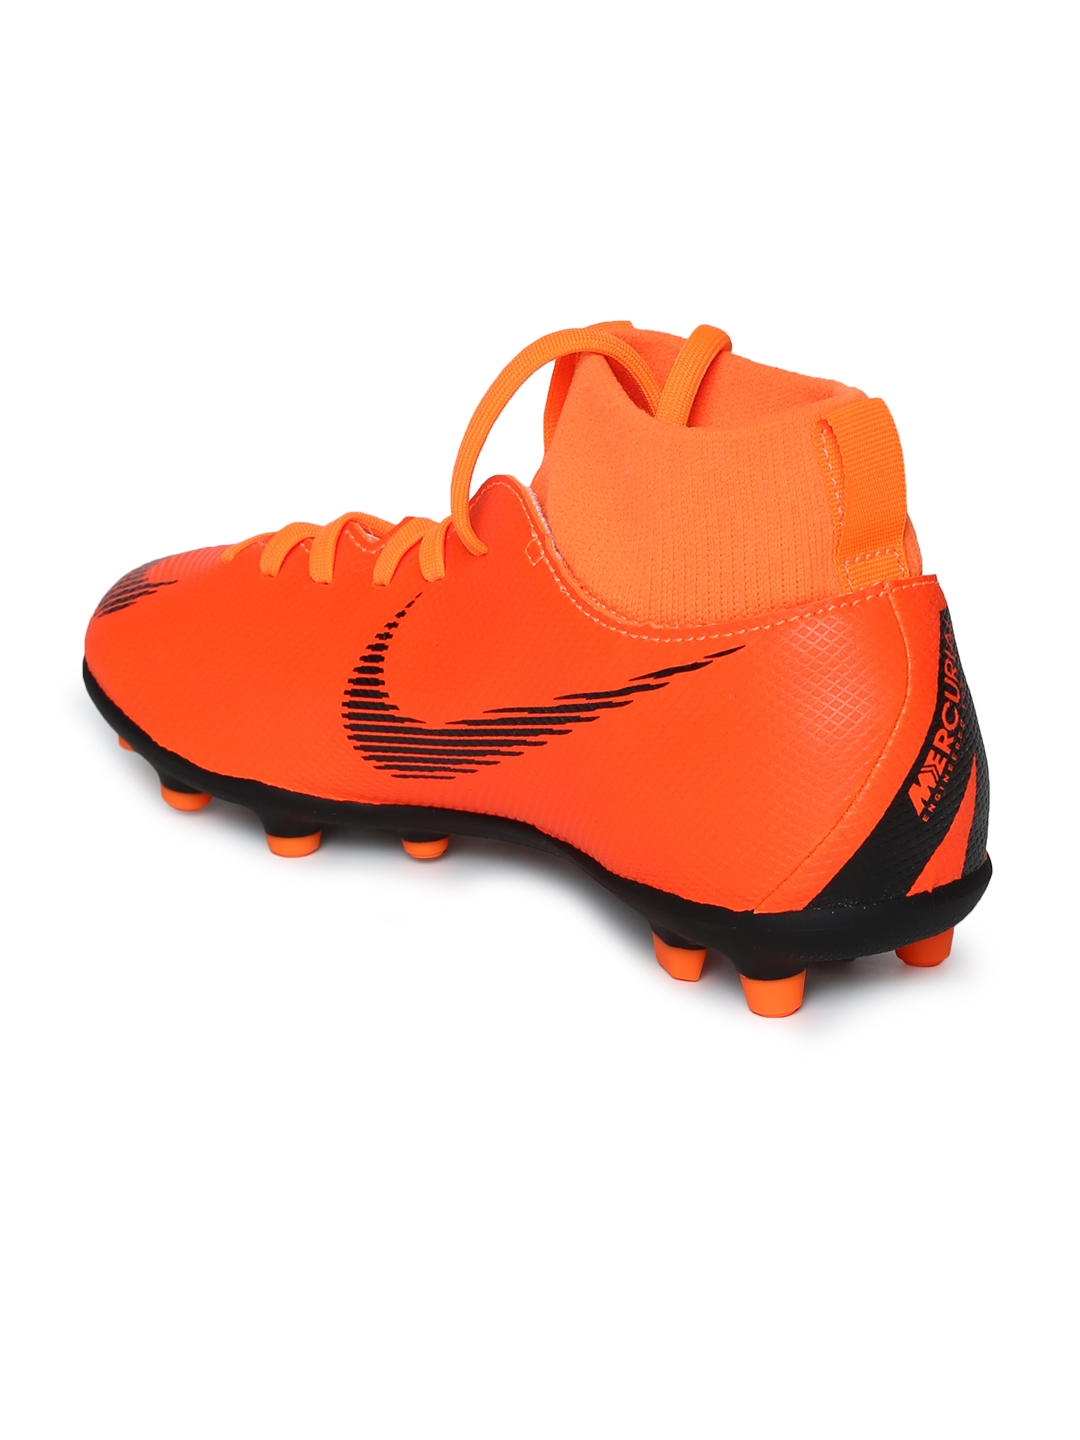 9a9a556c5 Buy Nike Kids Orange JR Superfly 6 Club MG Football Shoes - Sports ...